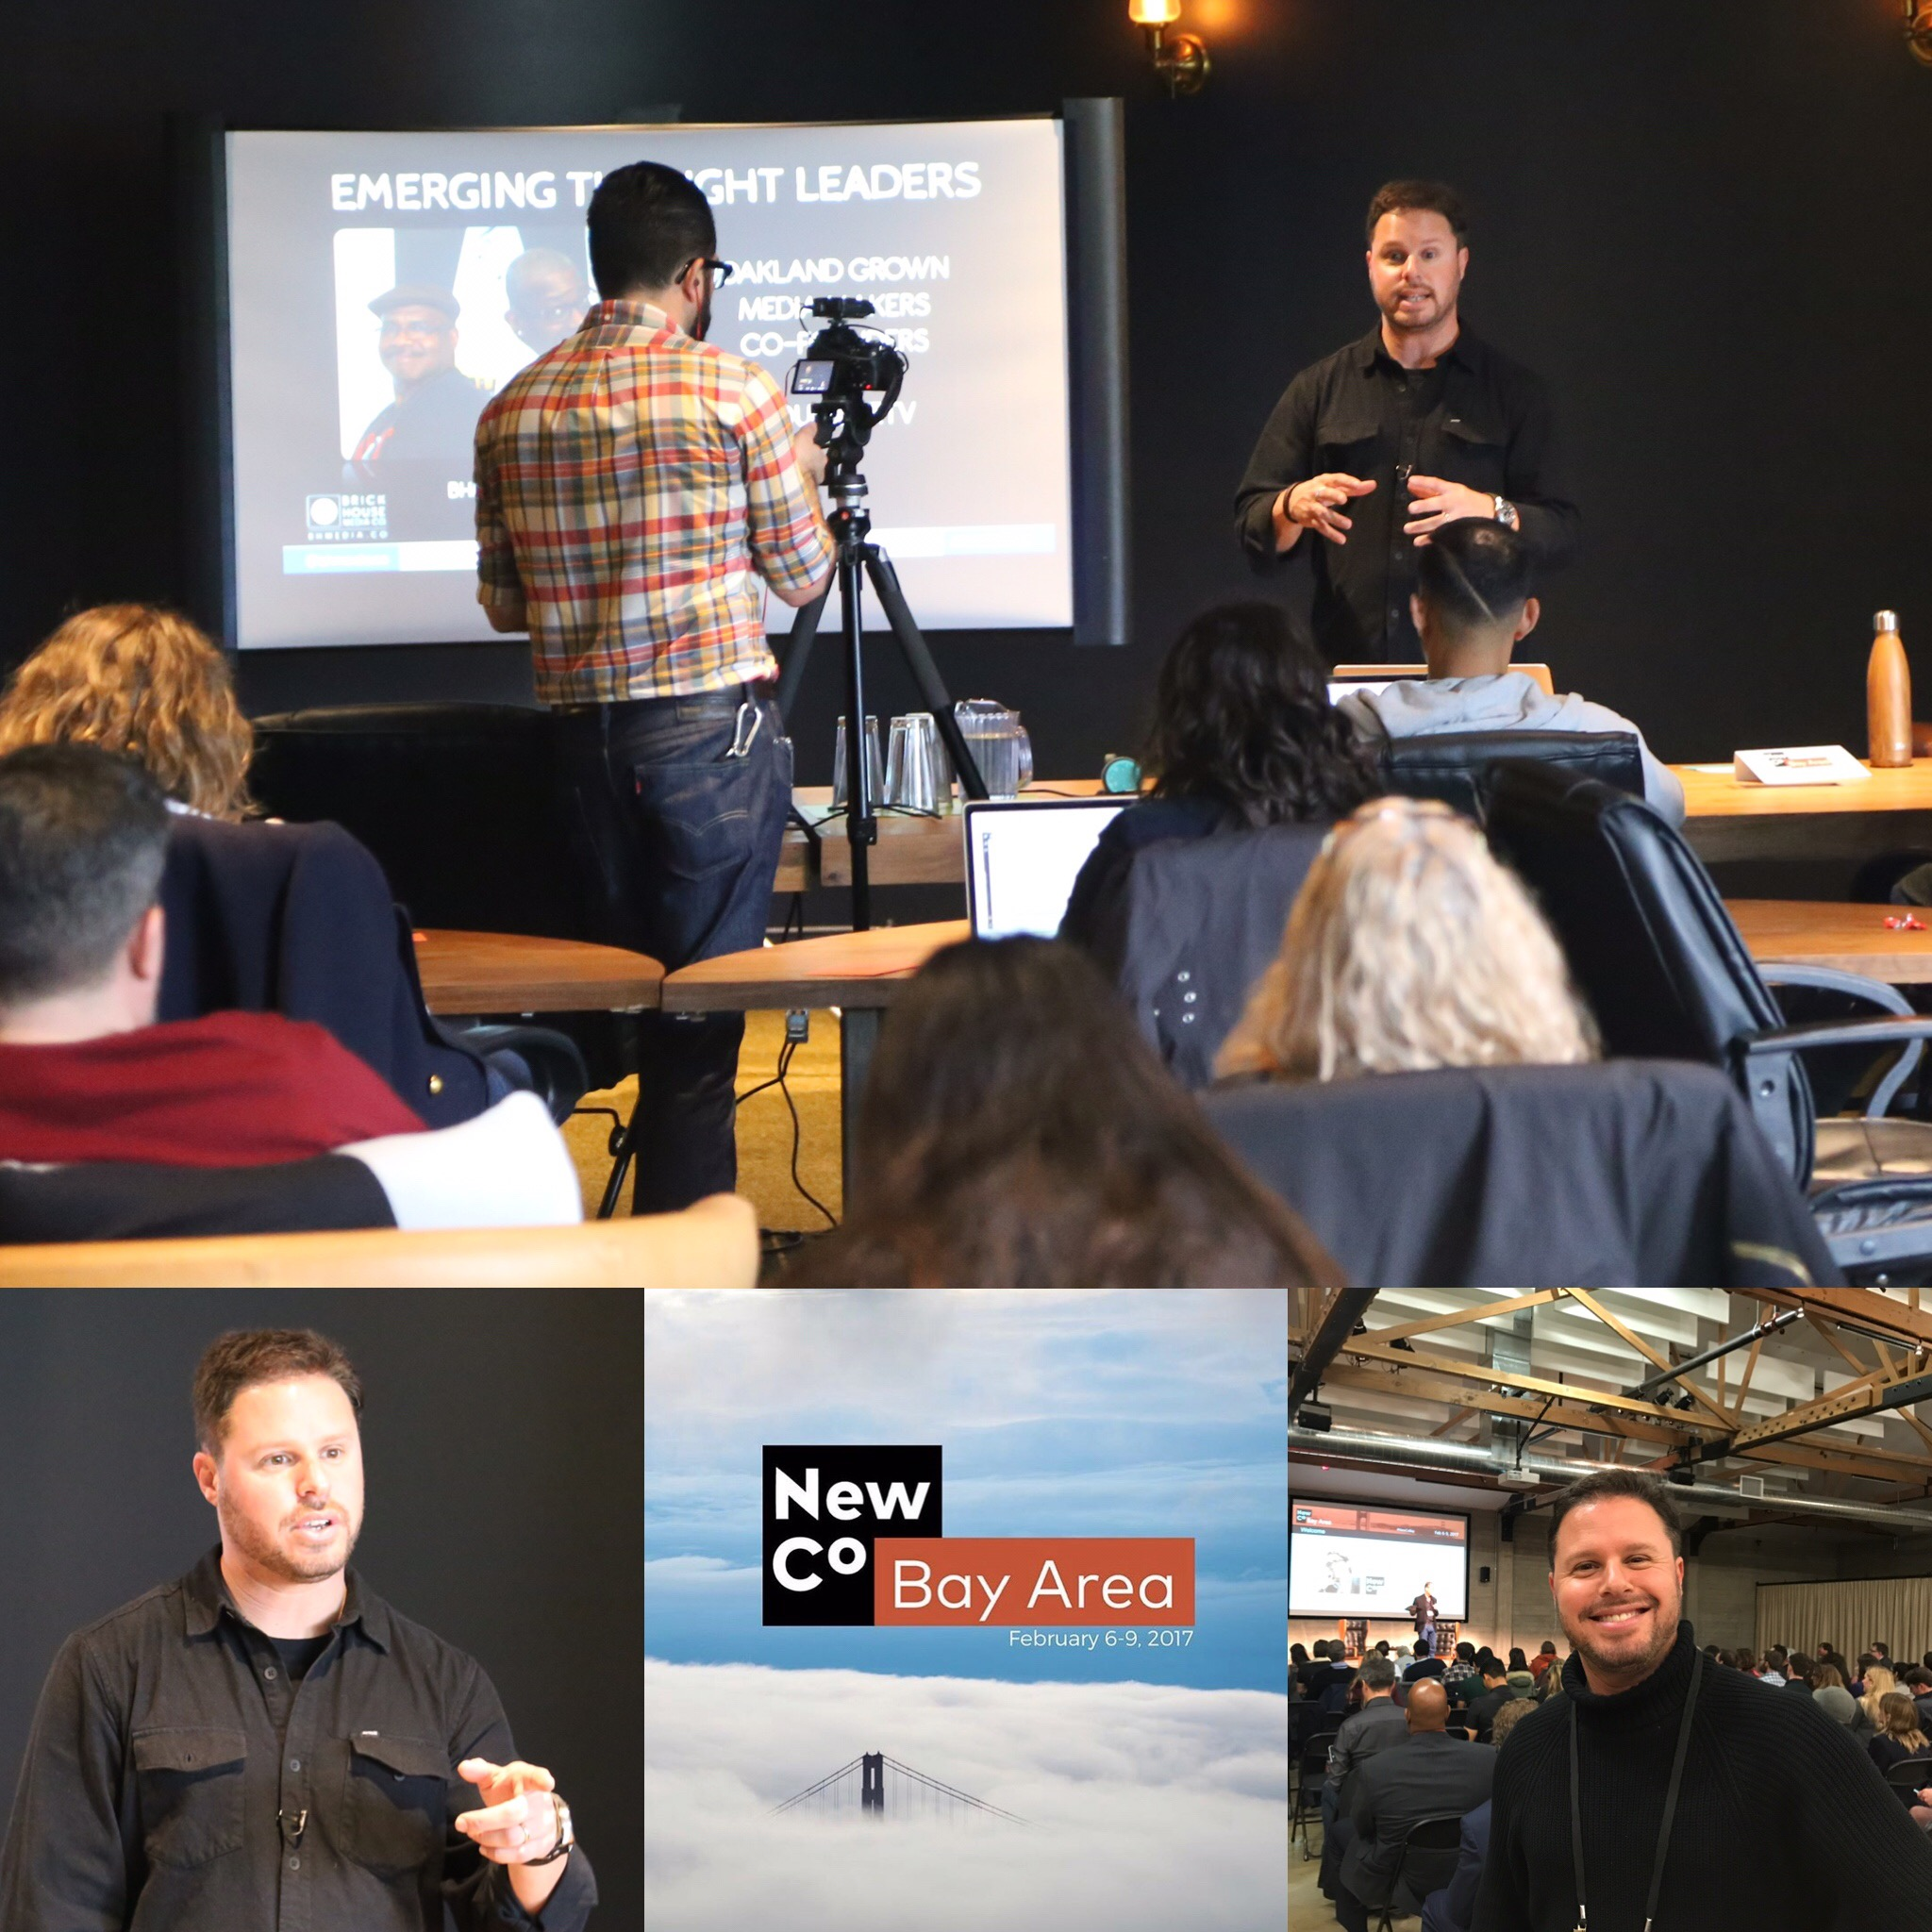 Brick House Media's  founding director,  Jared Brick  presenting on Thought Leadership to a sold-out crowd,  NewCo Bay Area  in Oakland, CA.